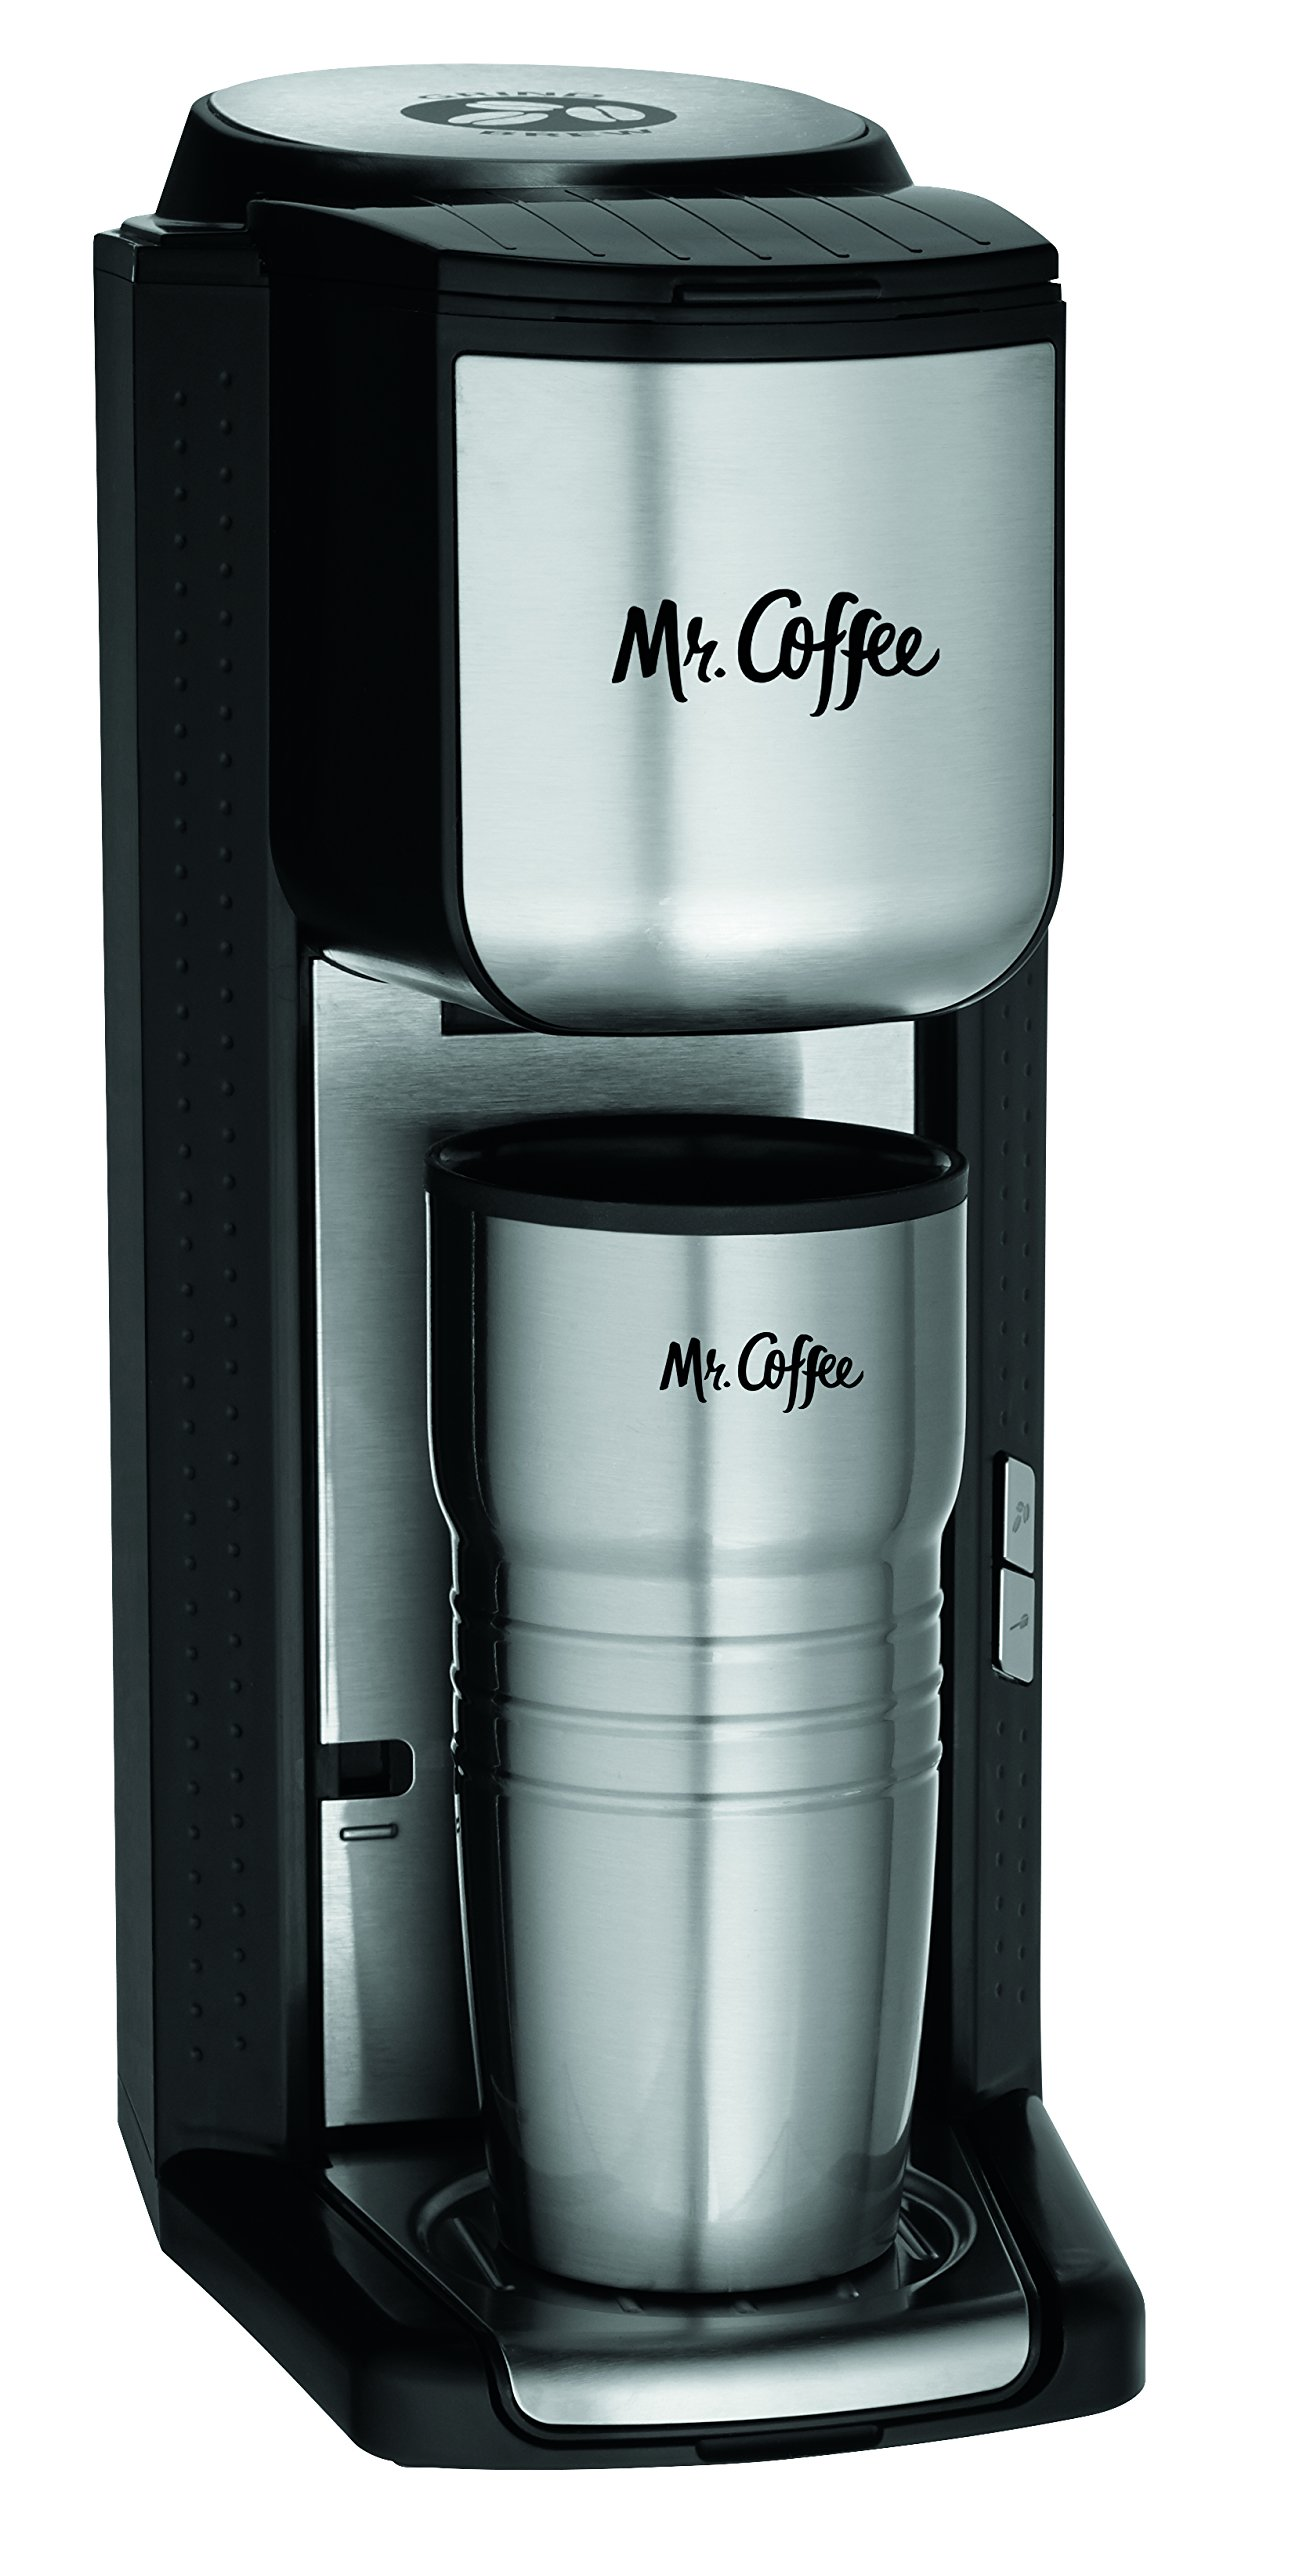 Mr. Coffee Single Cup Coffee Maker with Travel Mug and Built-In Grinder by Mr. Coffee